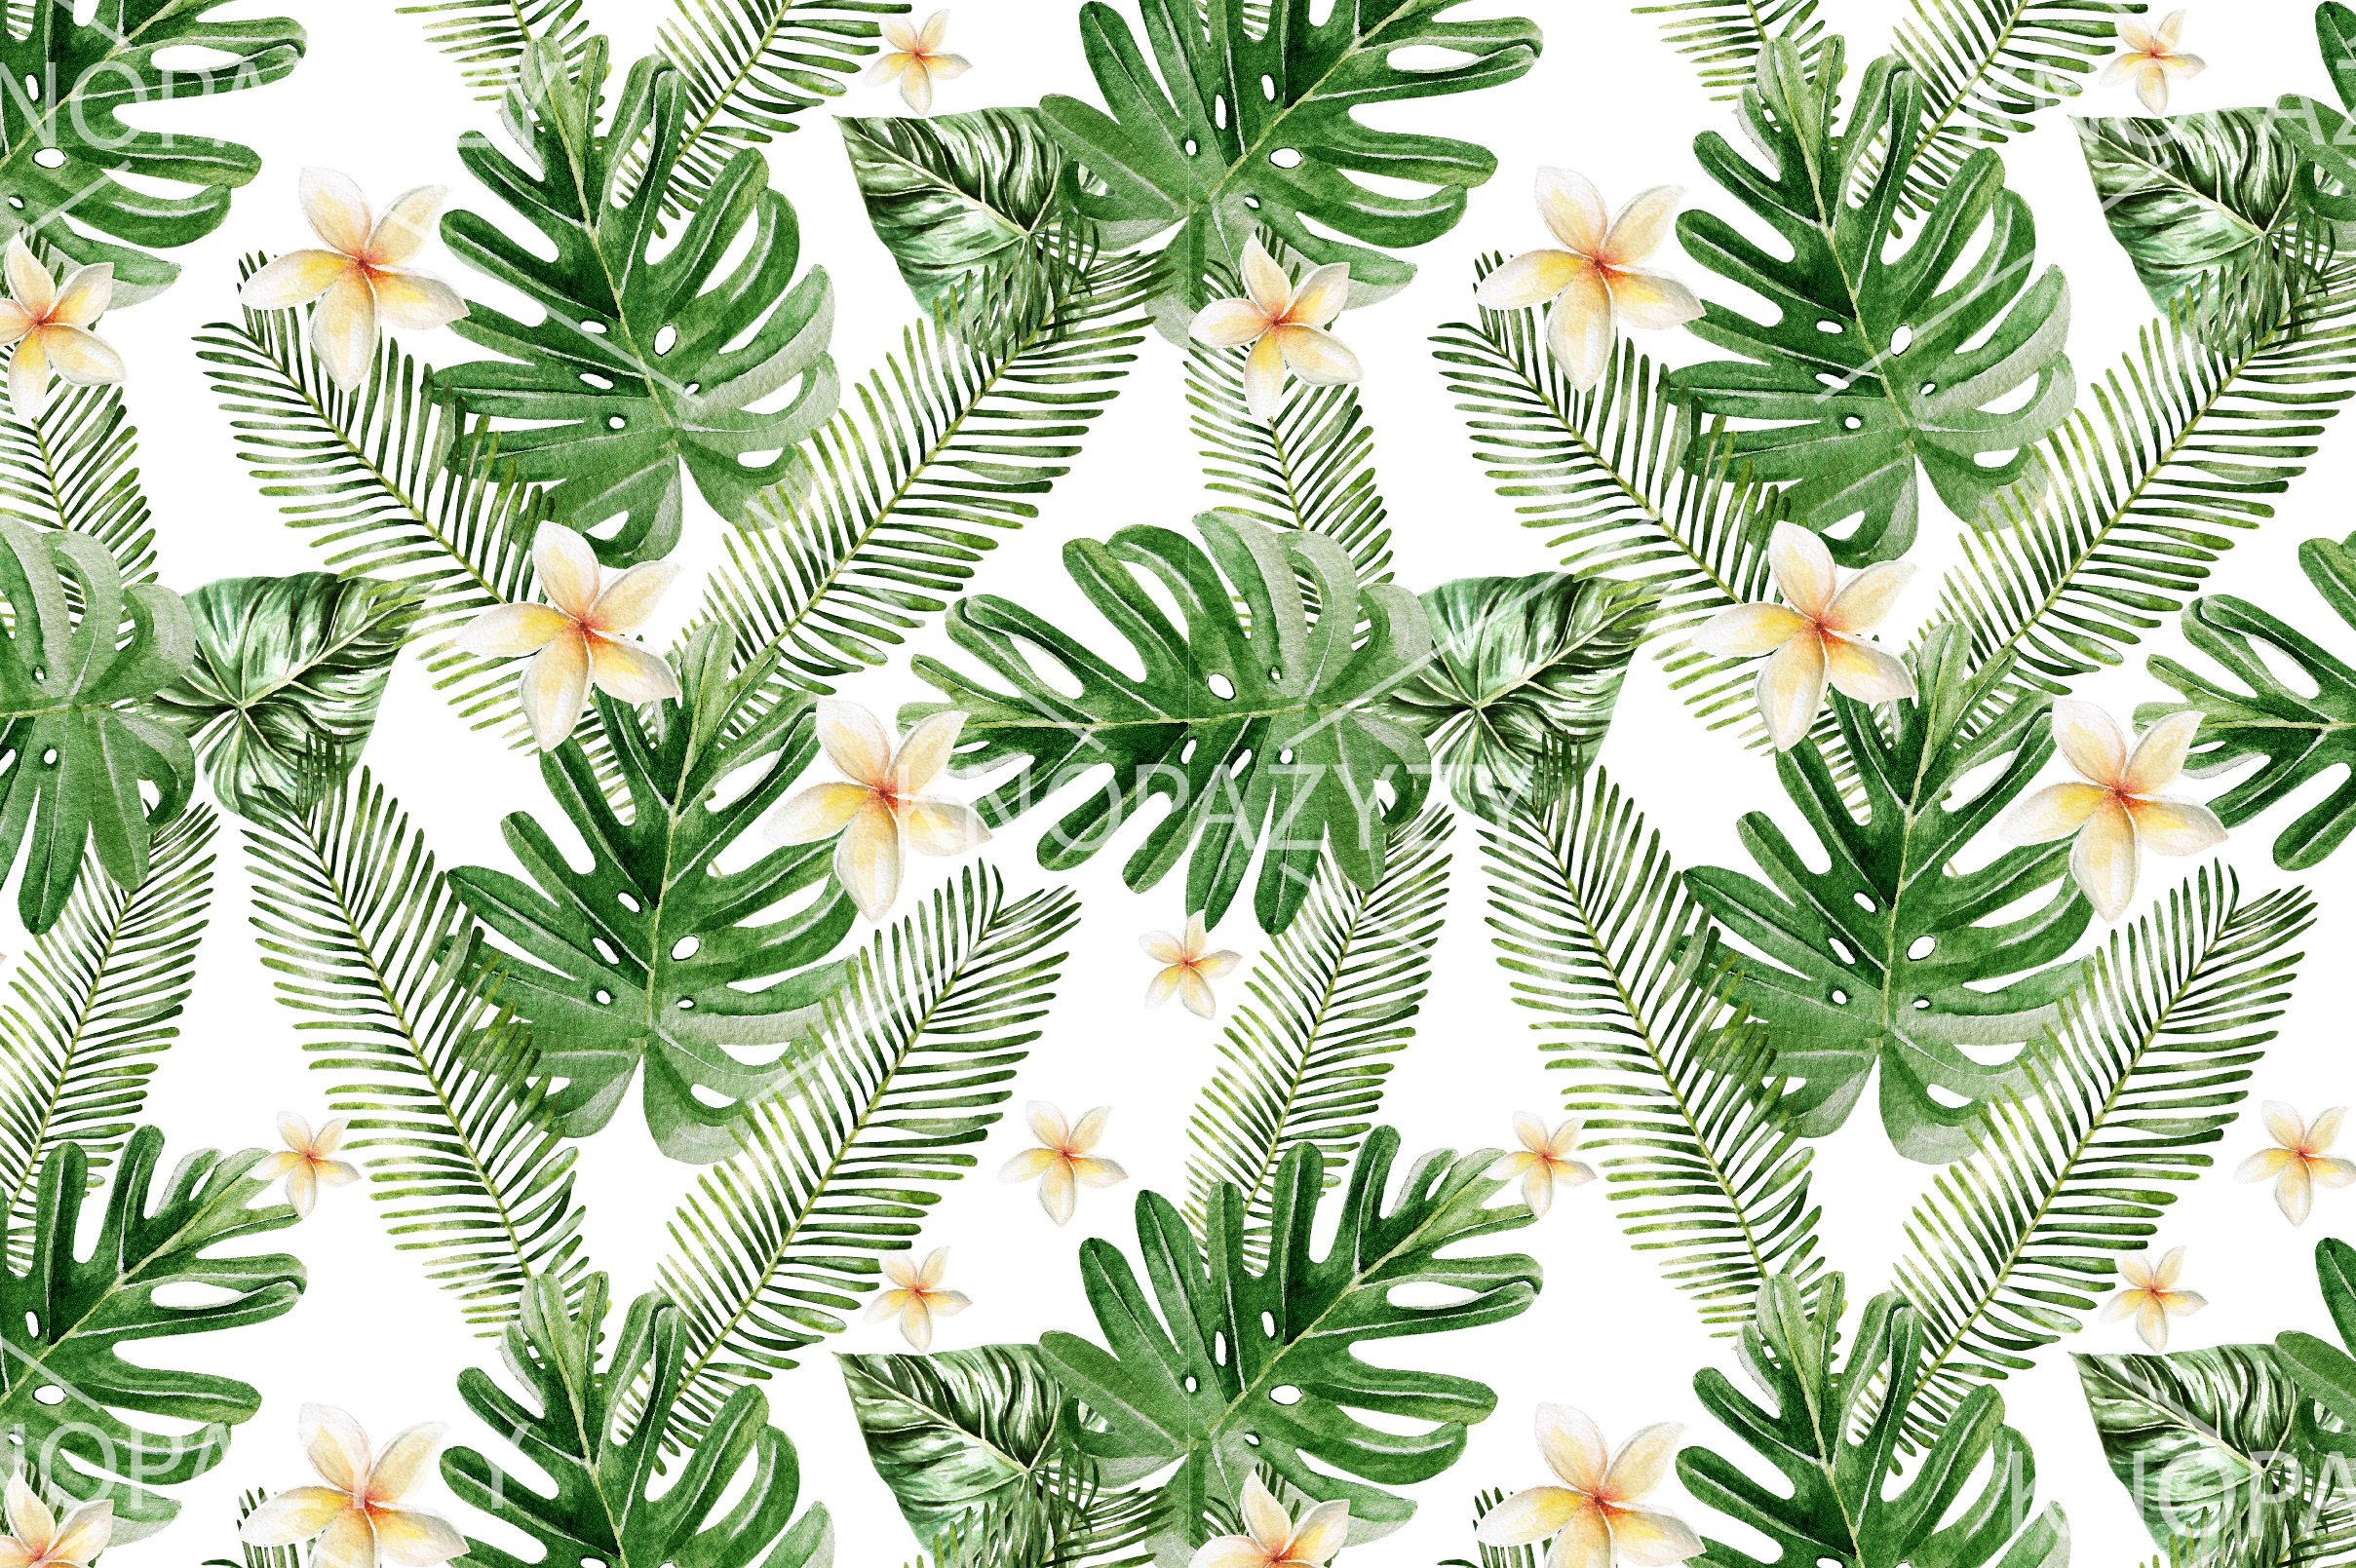 16 Hand Drawn Watercolor Pattern example image 12